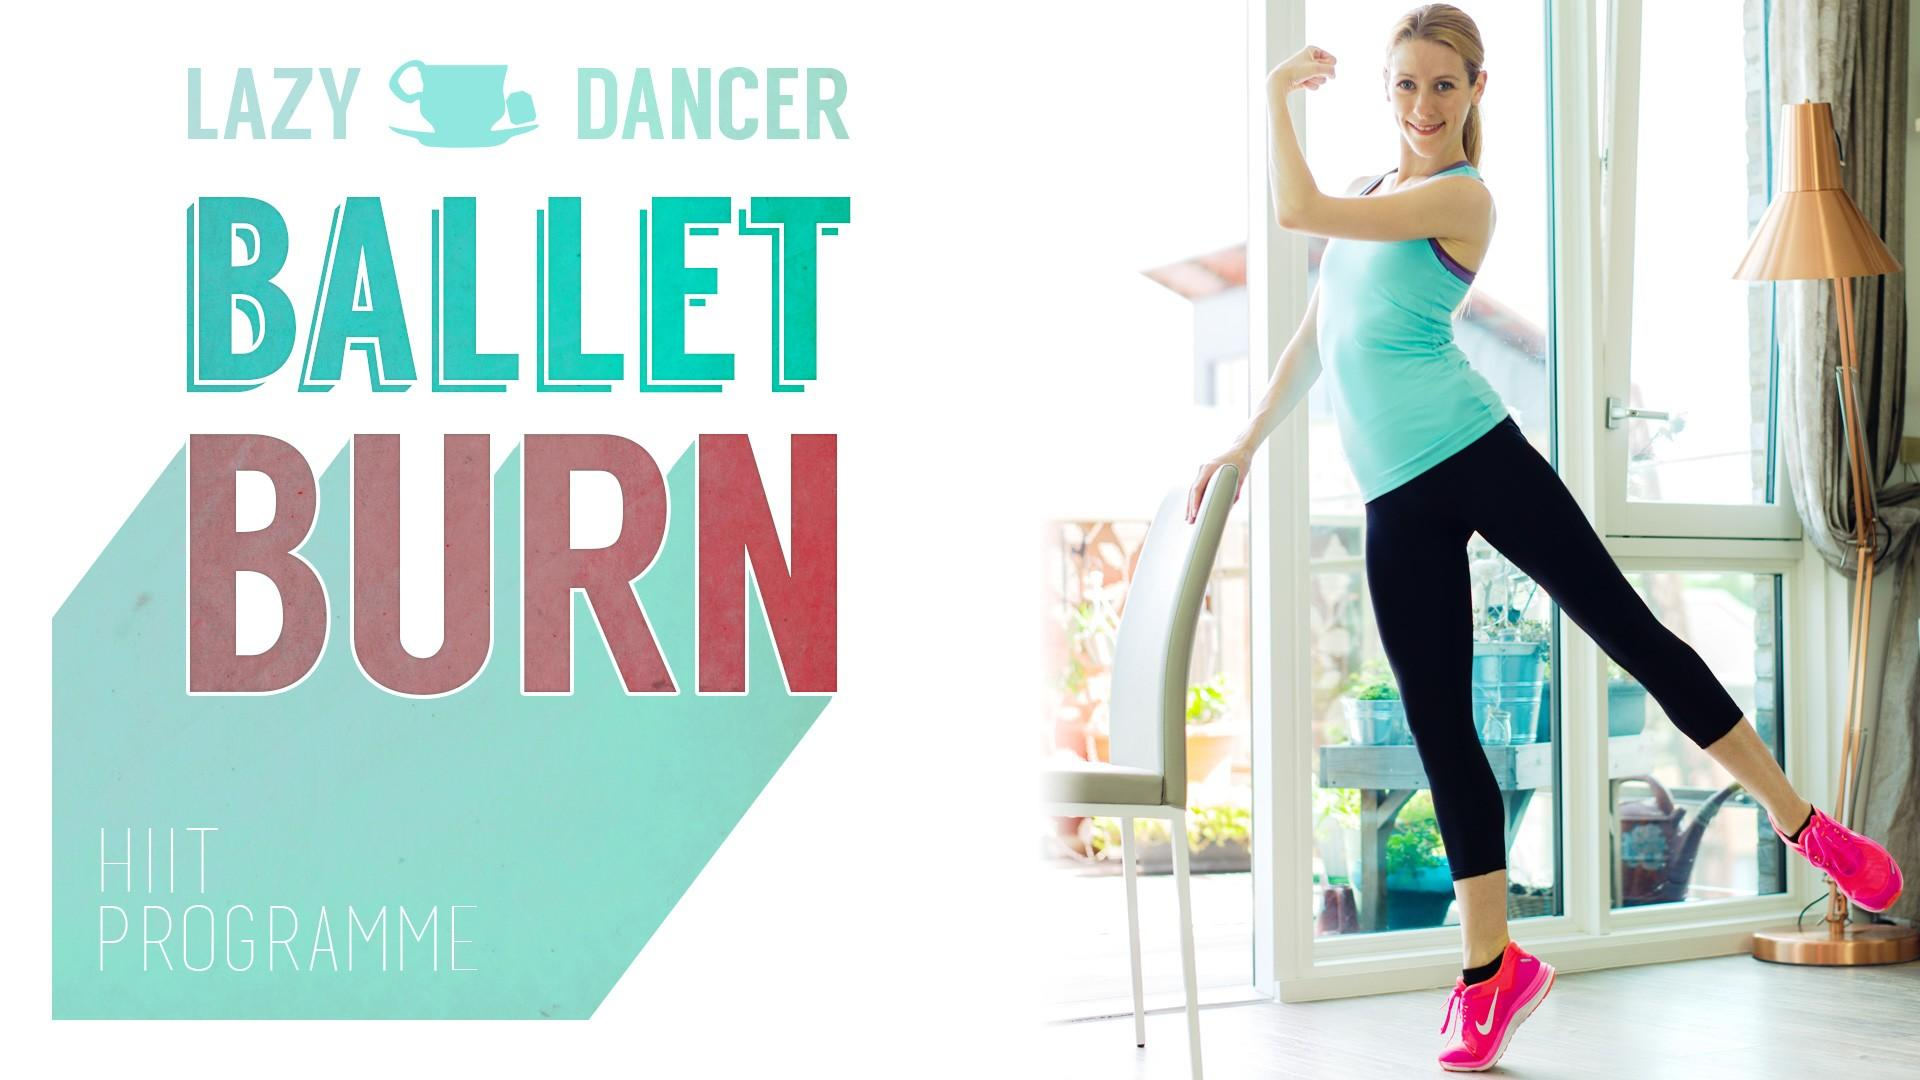 Ballet Burn HIIT Program